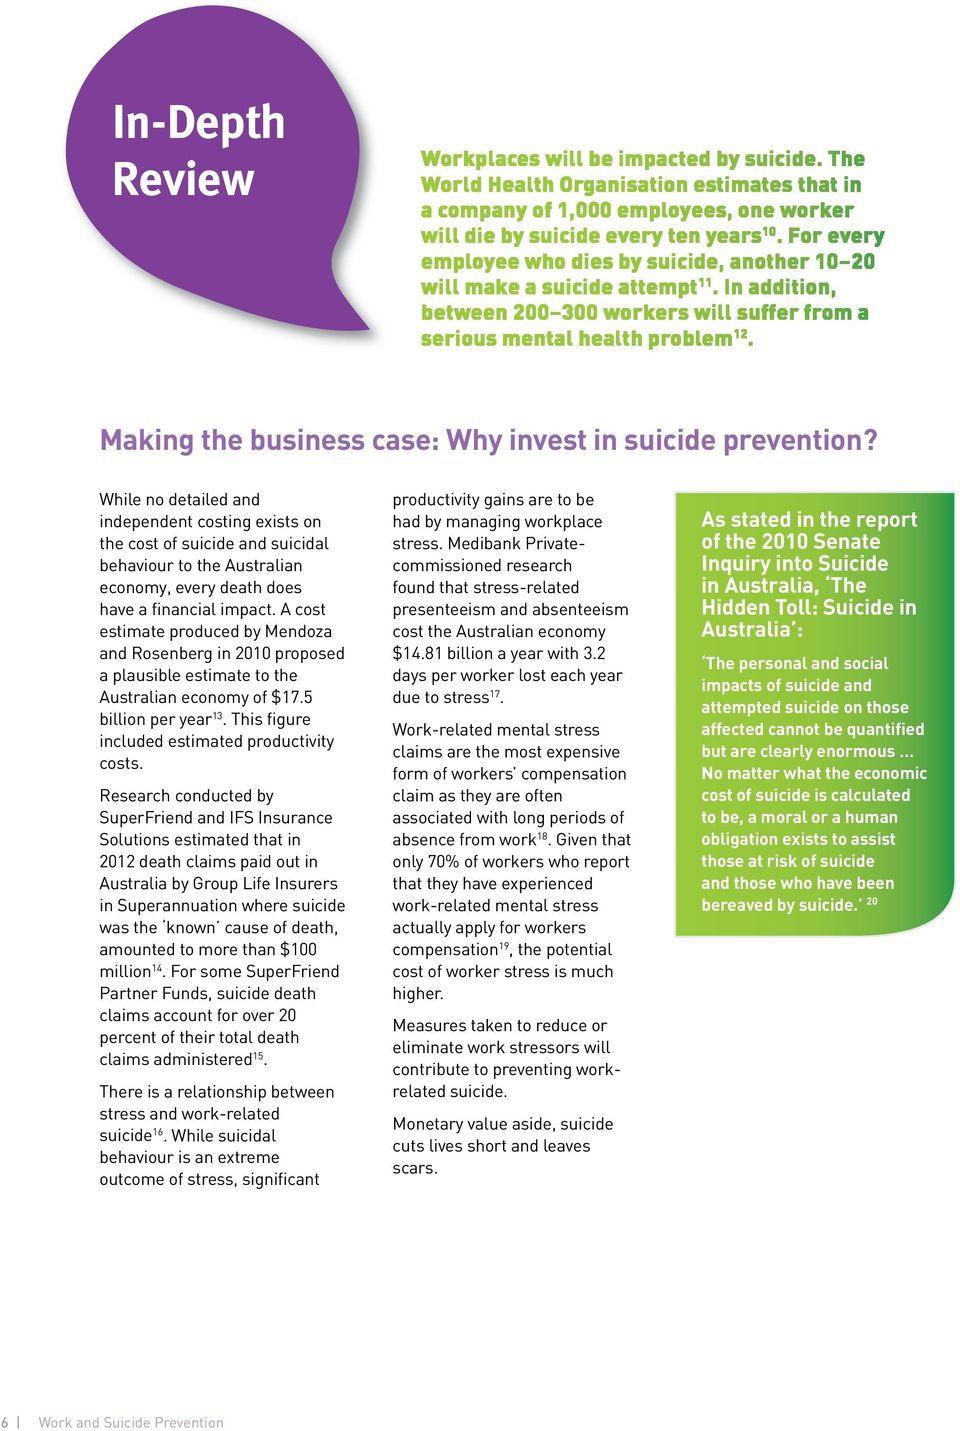 Making the business case: Why invest in suicide prevention?